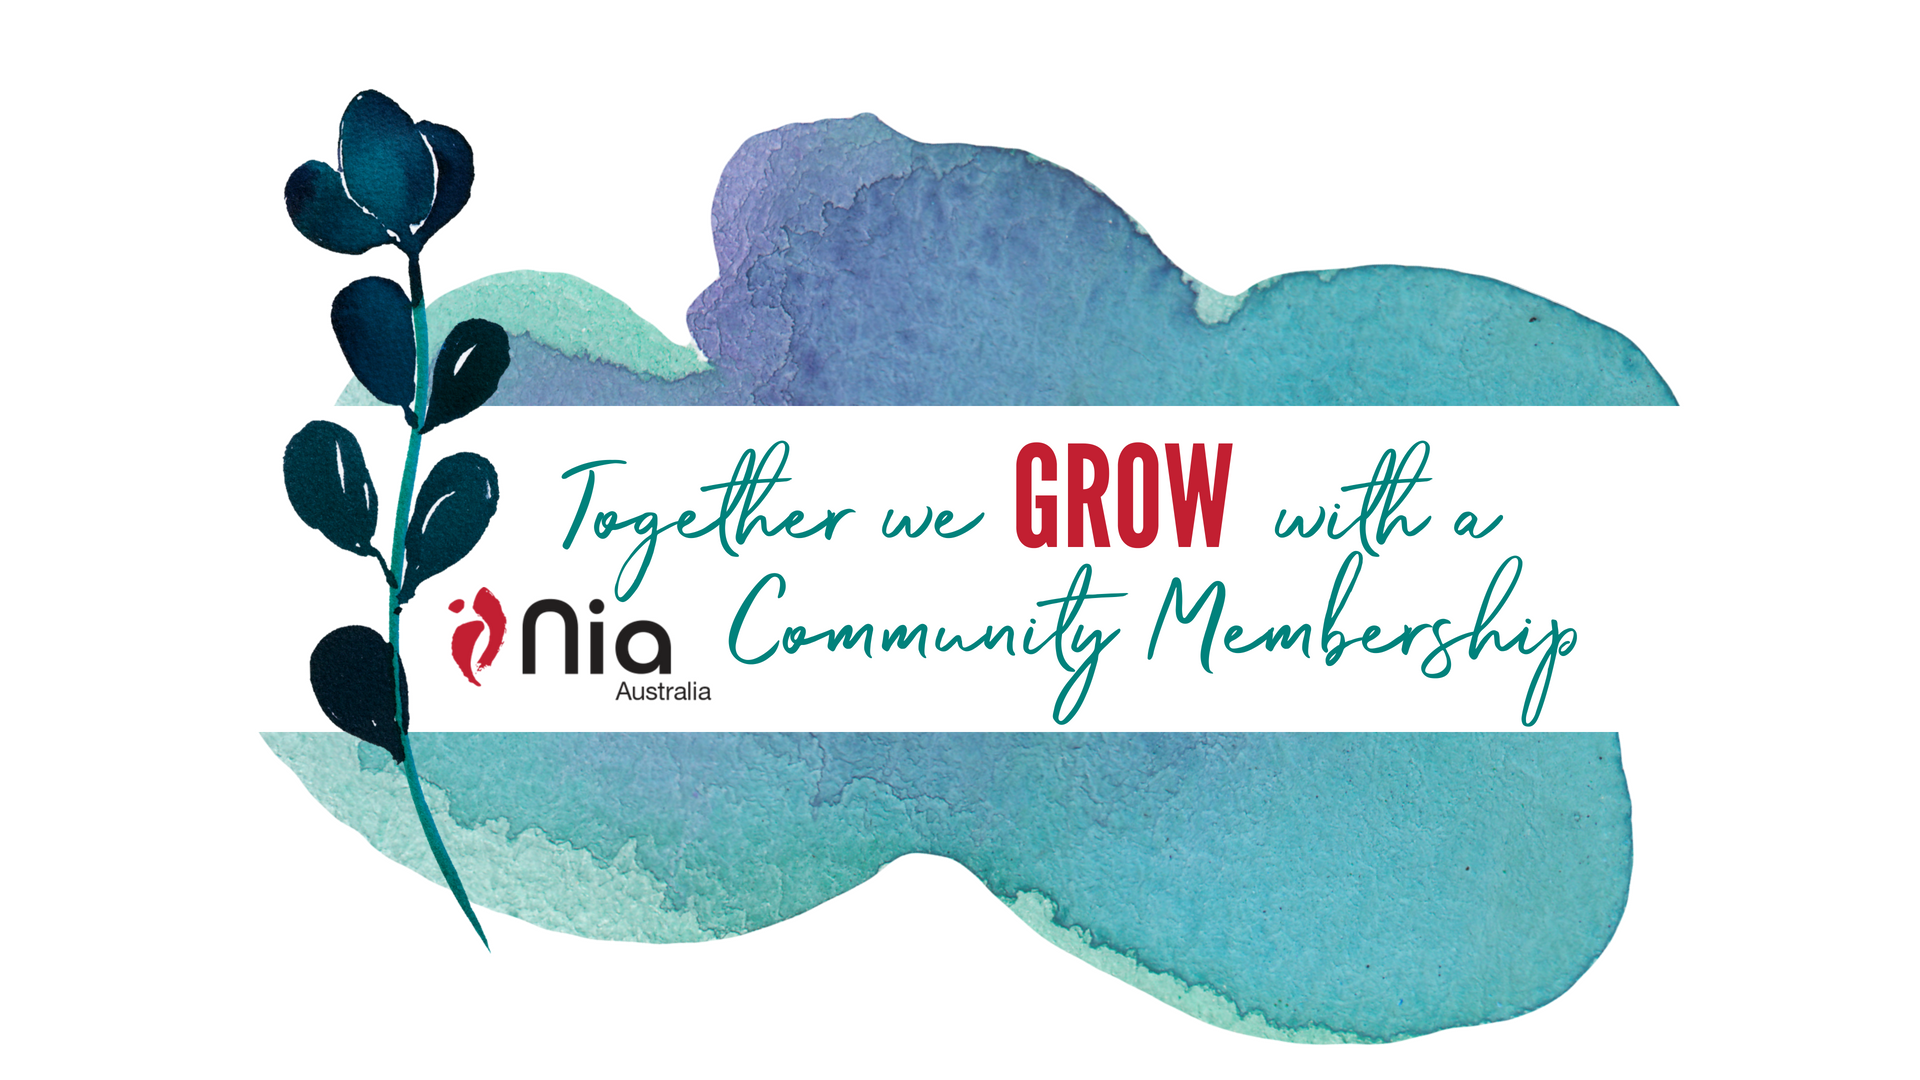 Together we grow with a Nia Community Membership